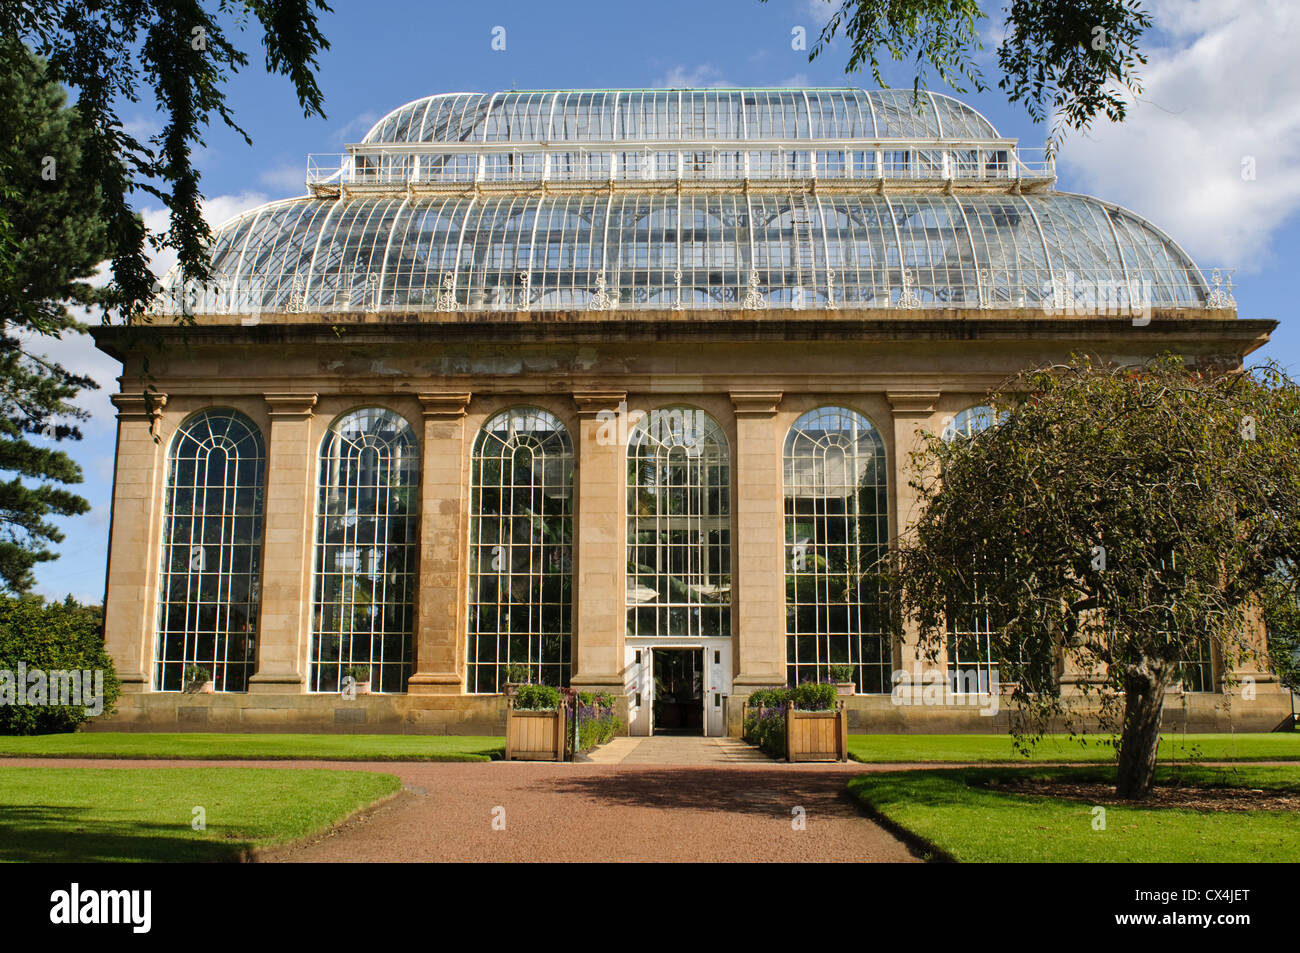 Royal Botanic Garden Edinburgh, Glasshouse